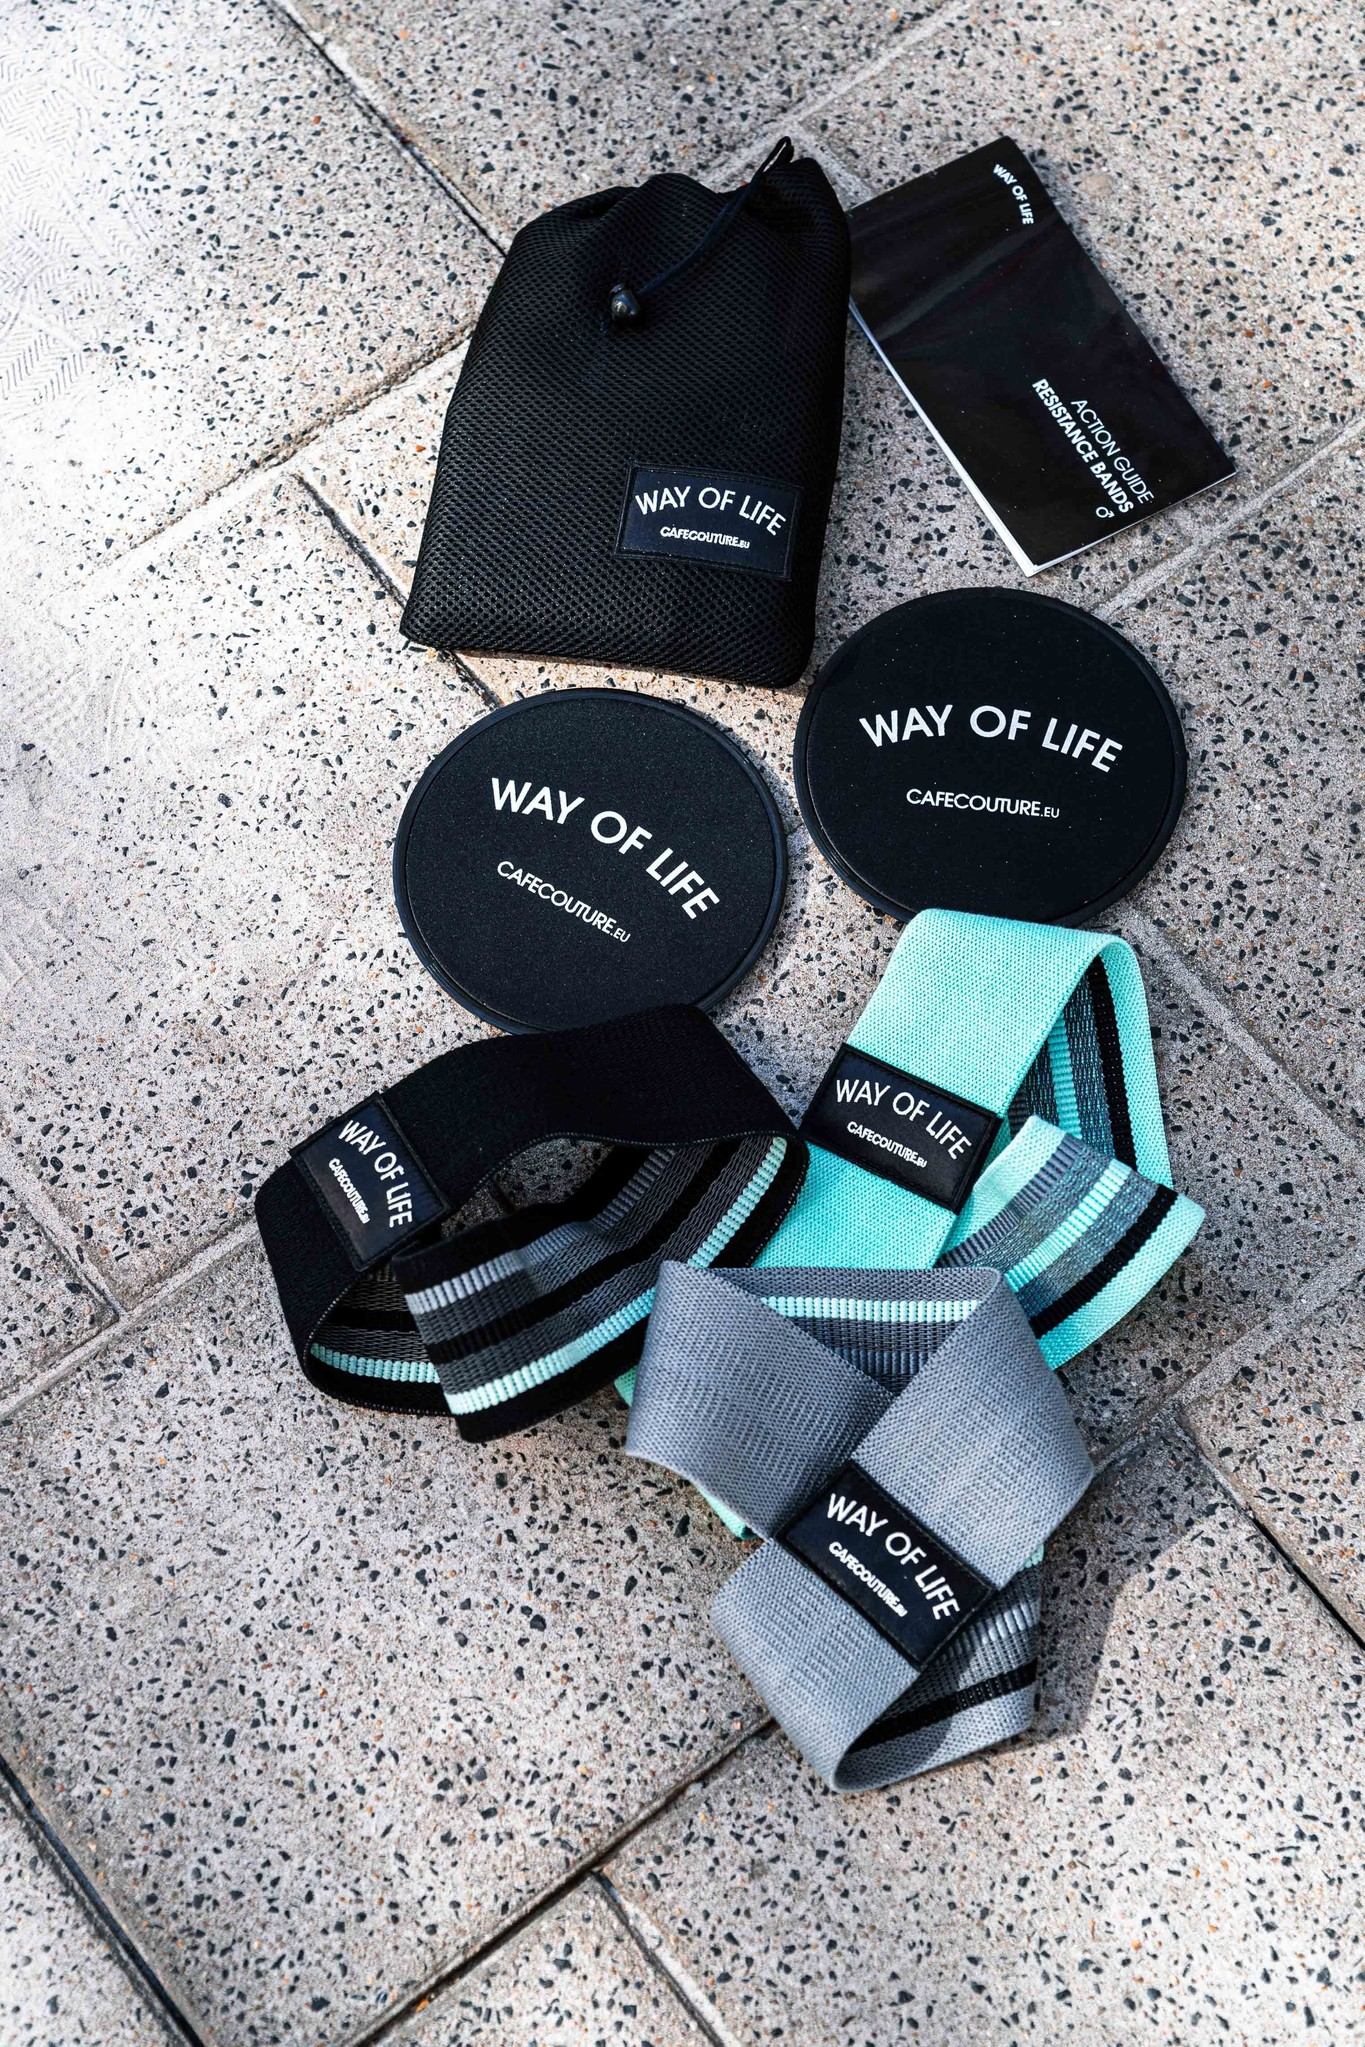 WAY OF LIFE resistance bands & sliding pads (M)